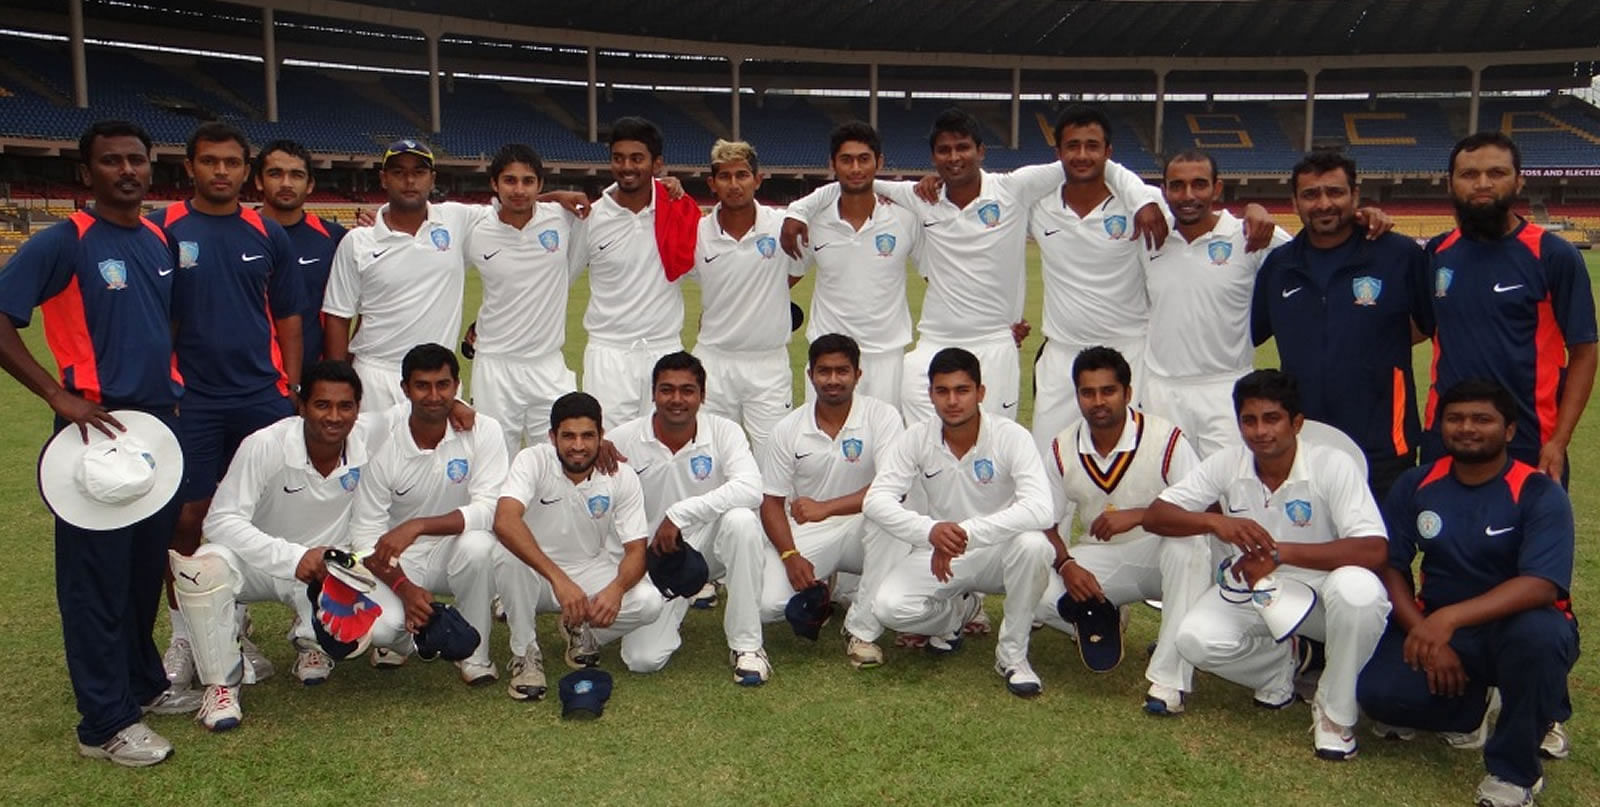 Karnataka claim season's third title by winning Vijay Hazare trophy